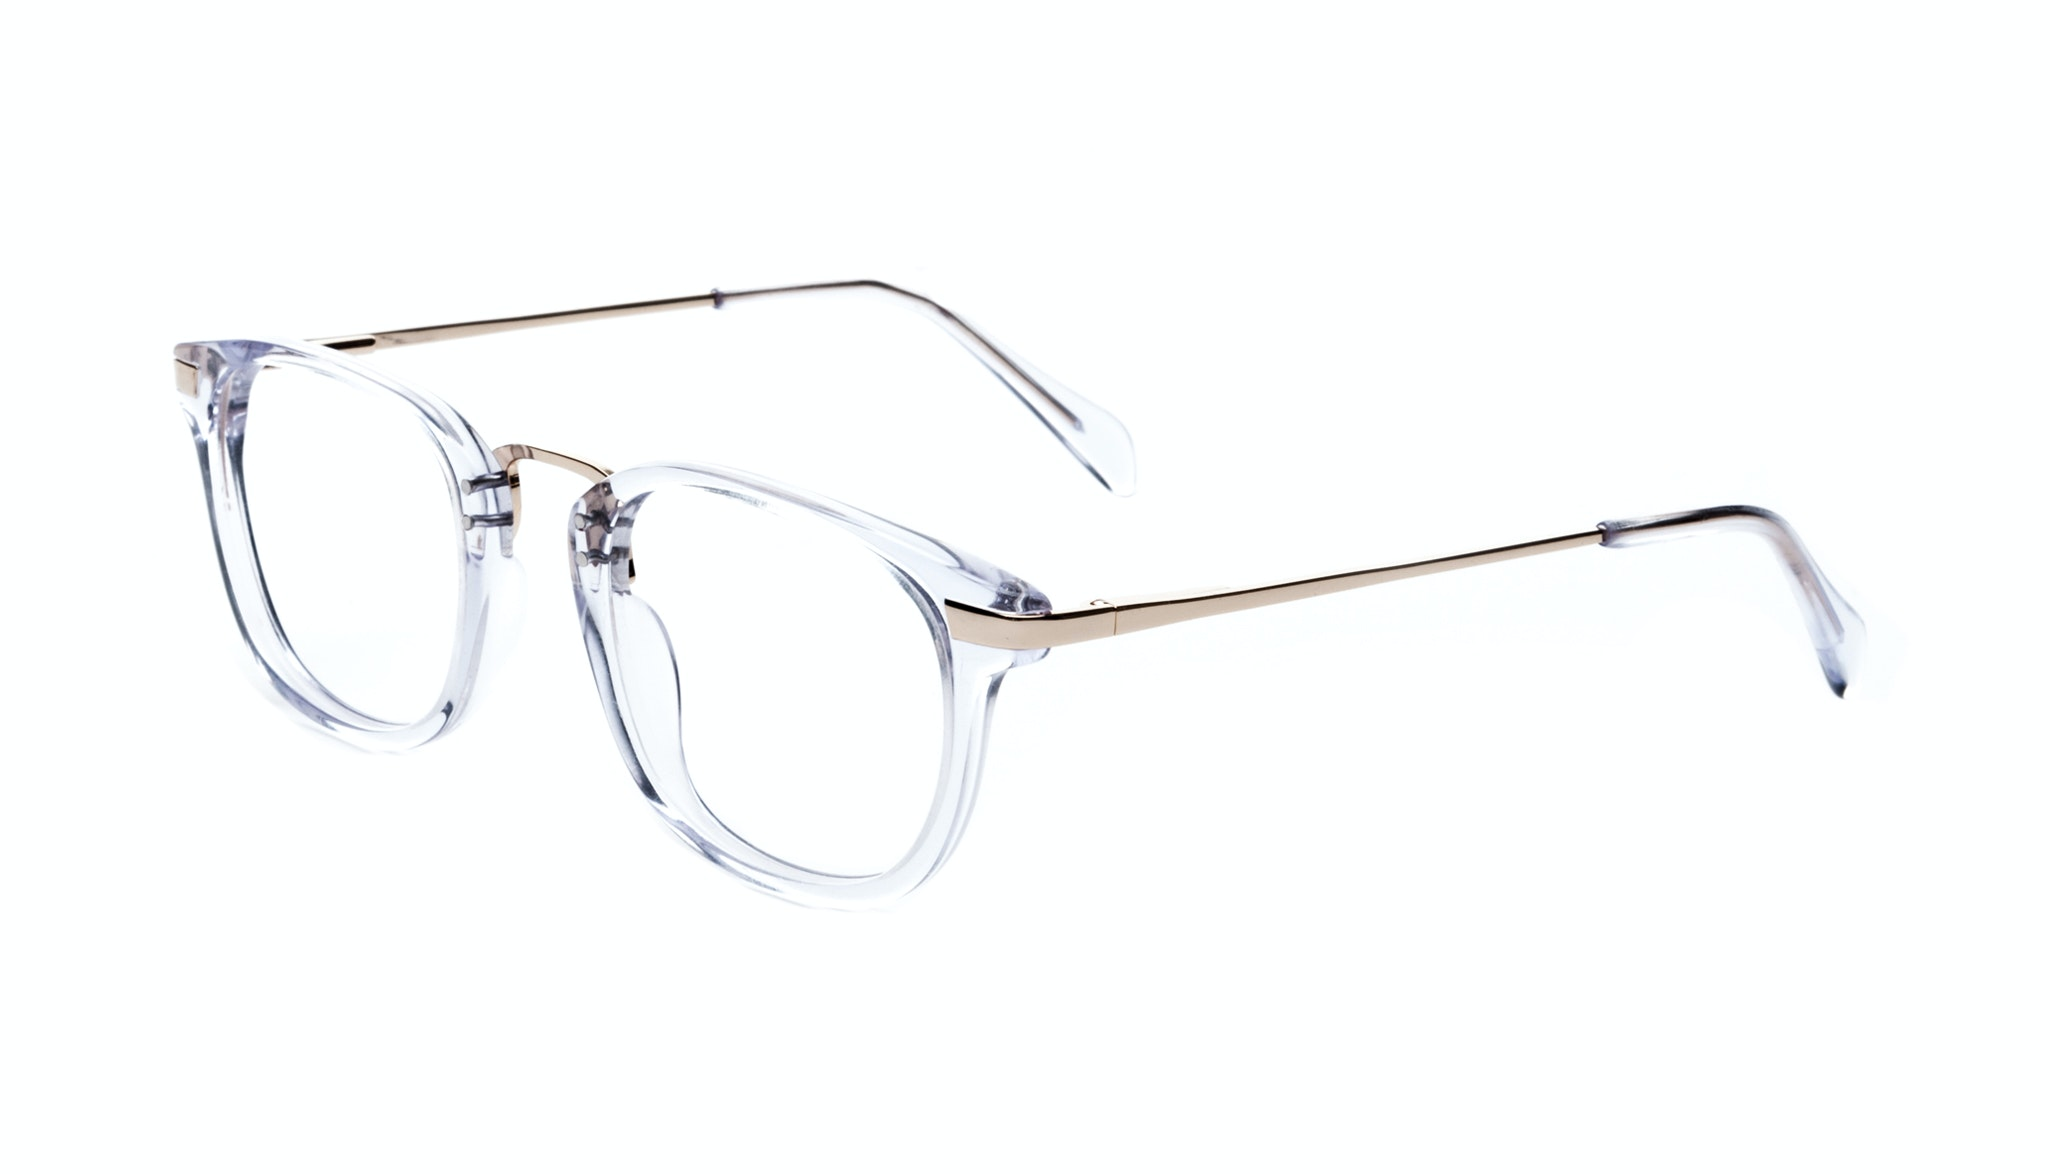 Affordable Fashion Glasses Rectangle Eyeglasses Men Women Daze Gold Diamond Tilt